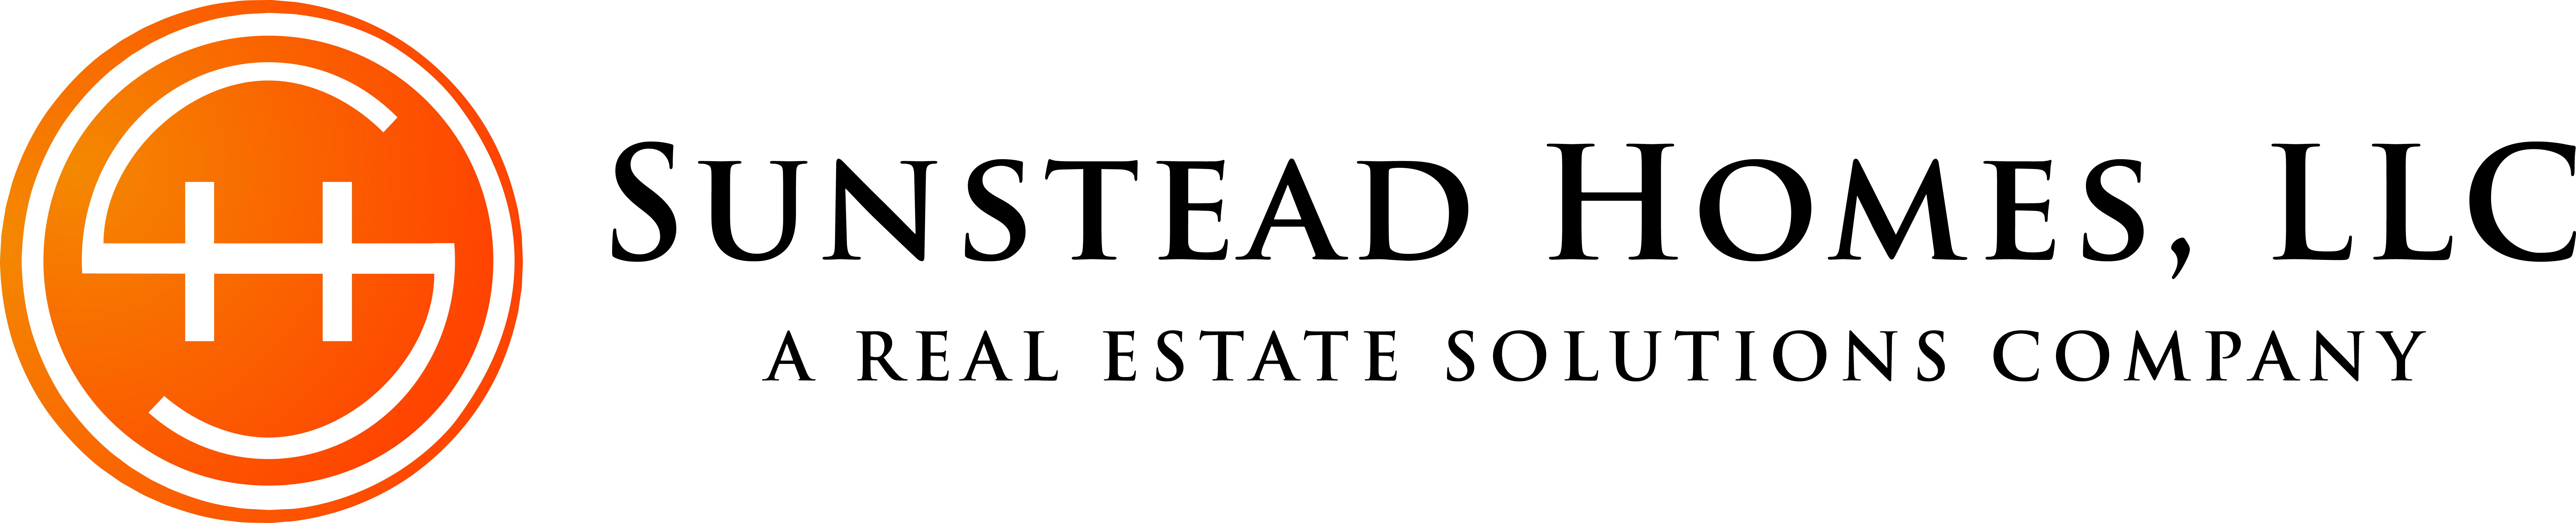 Sunstead Homes, LLC